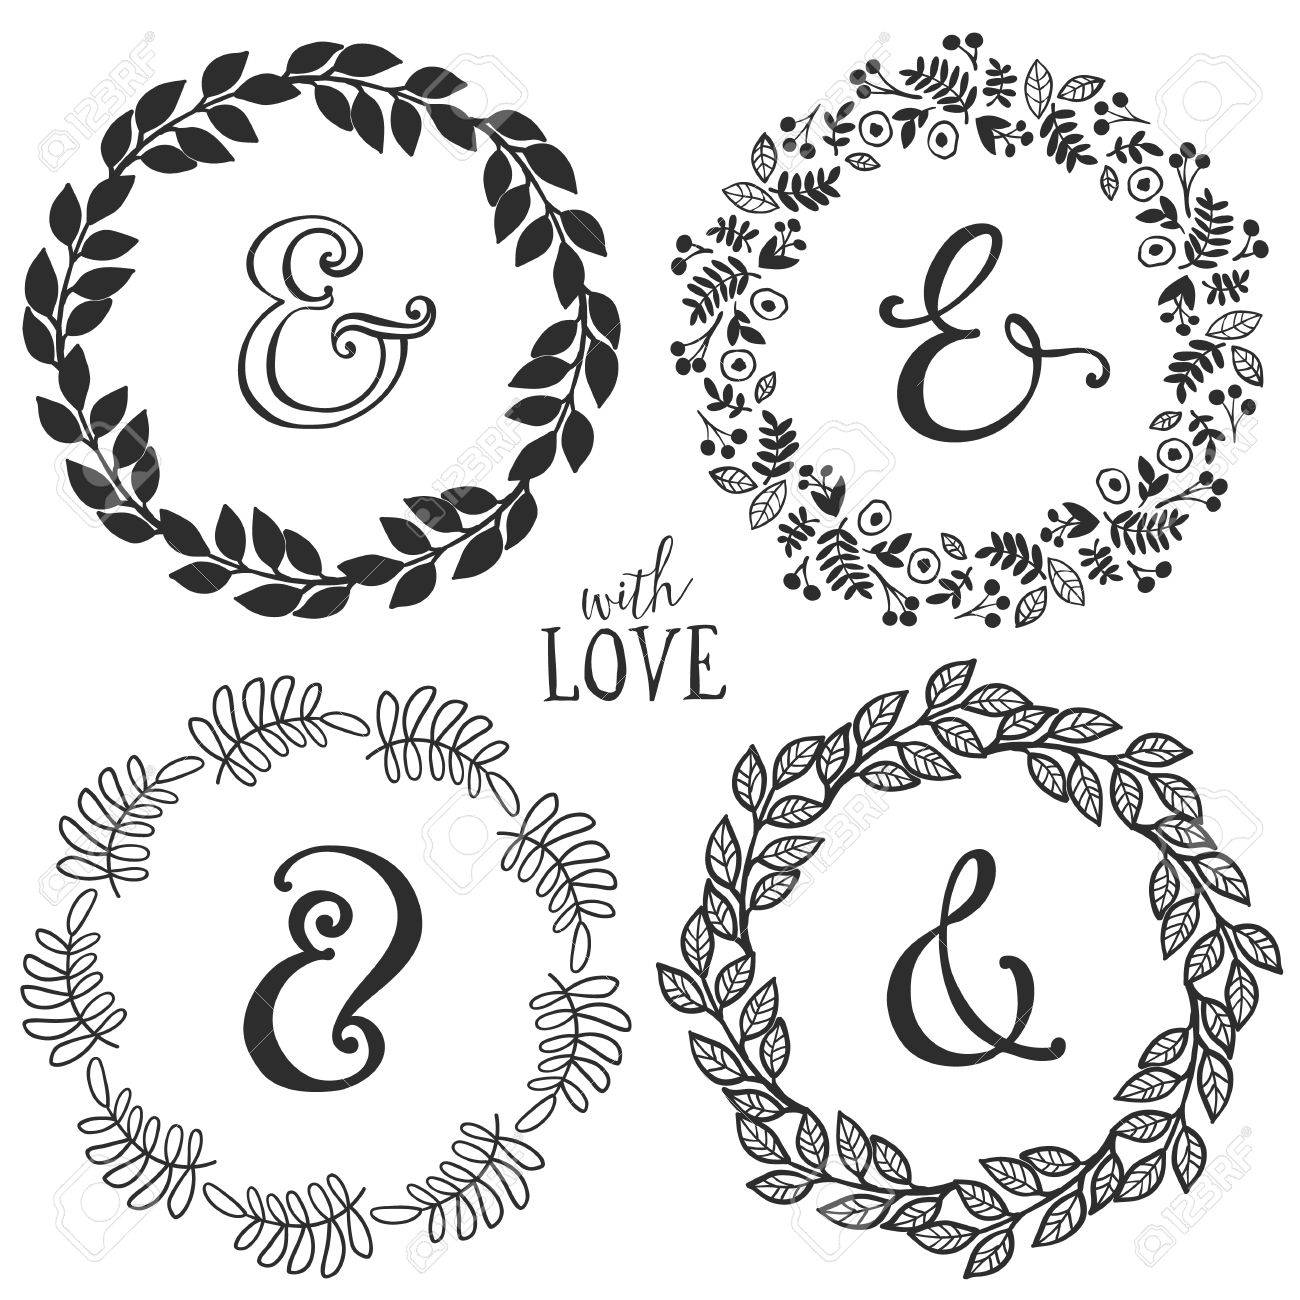 hand drawn rustic vintage wreaths with lettering and ampersand floral vector graphic nature design